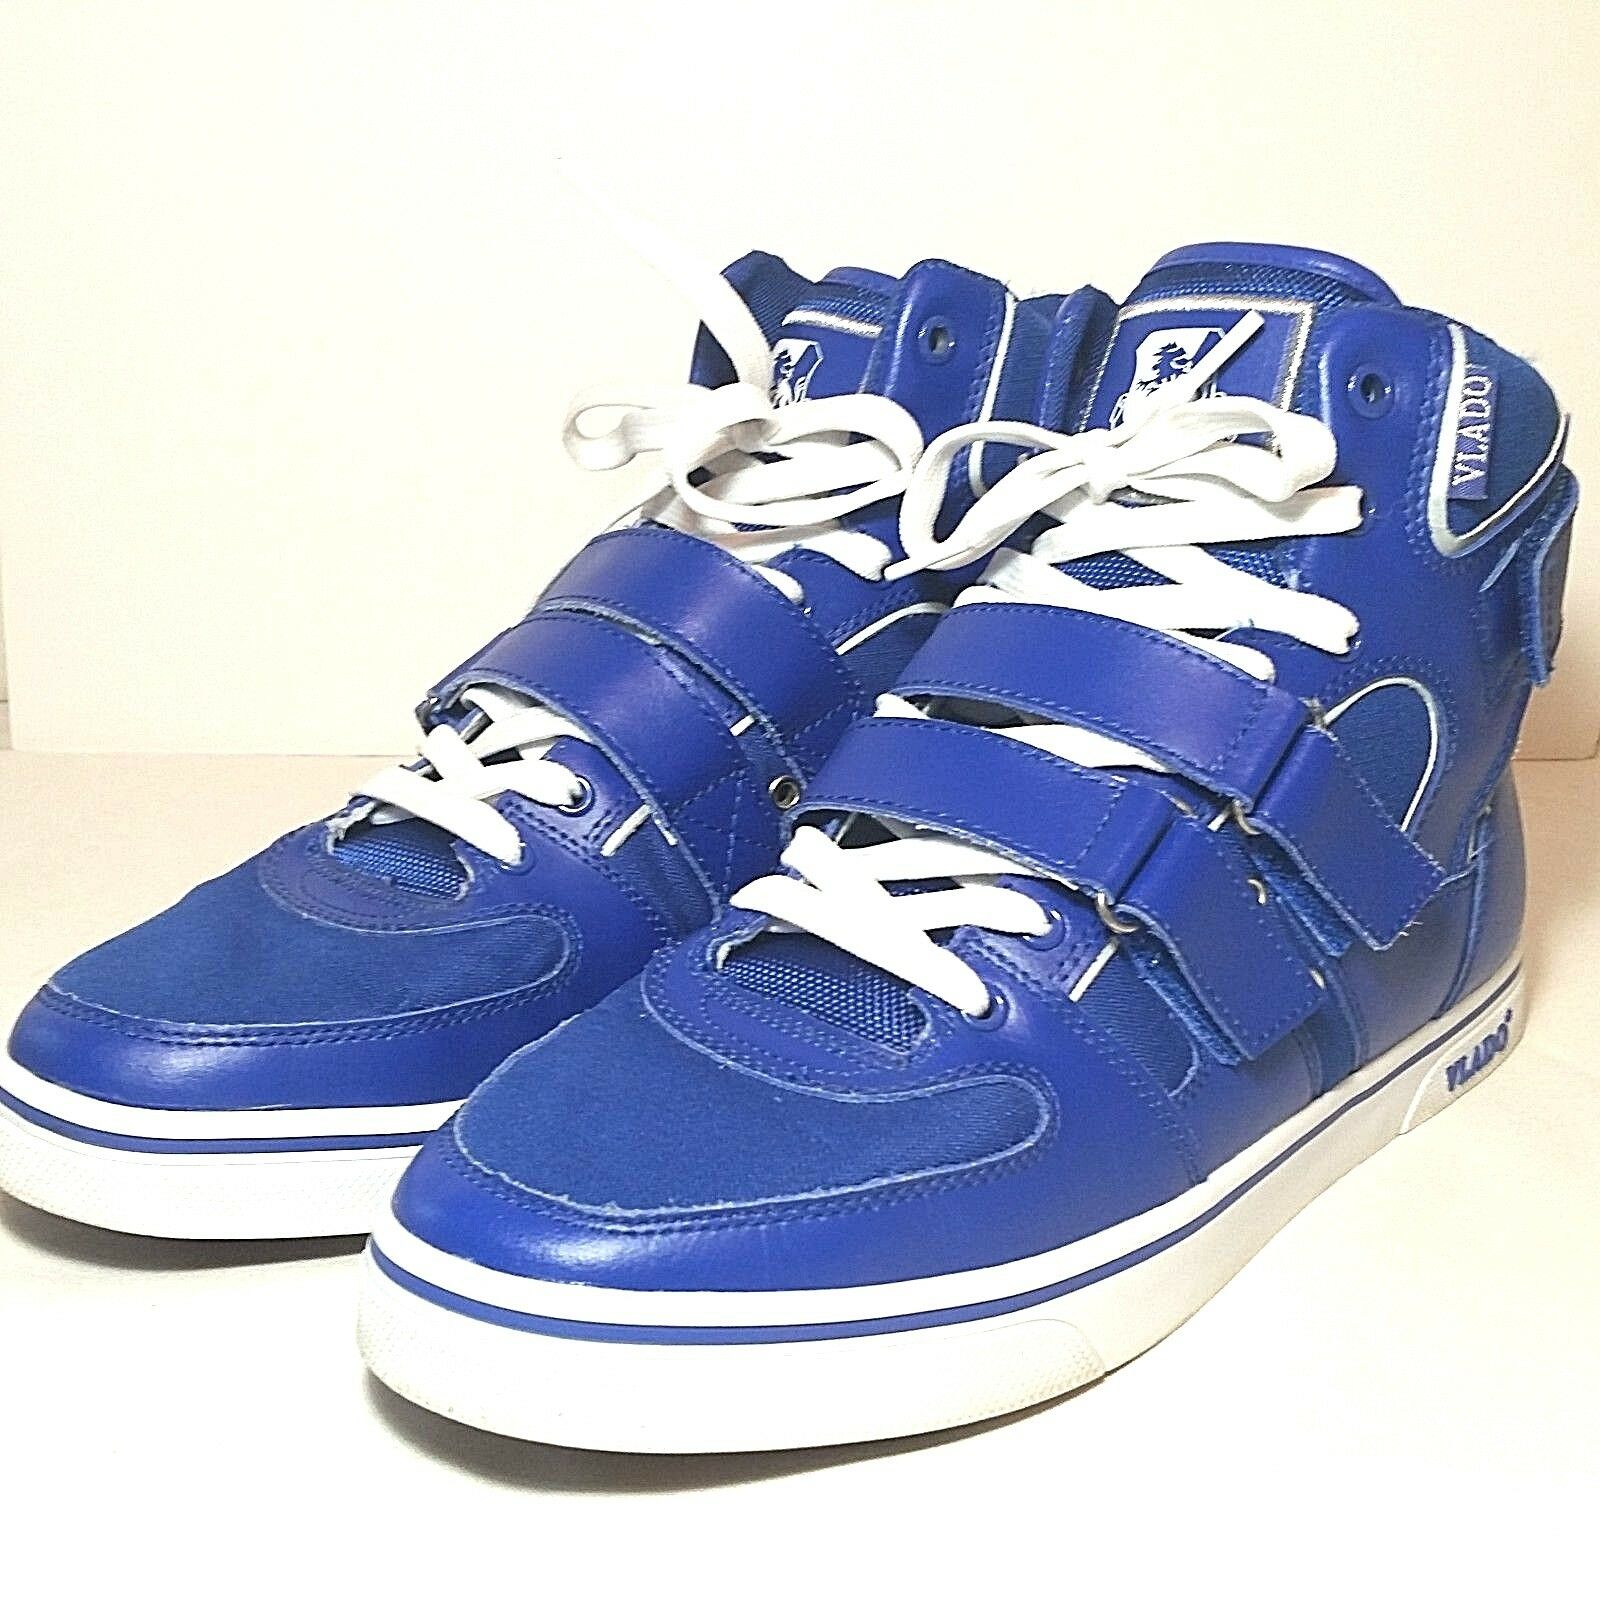 Vlado High Top sneakers bluee size 10.5 lace up hook and loop straps